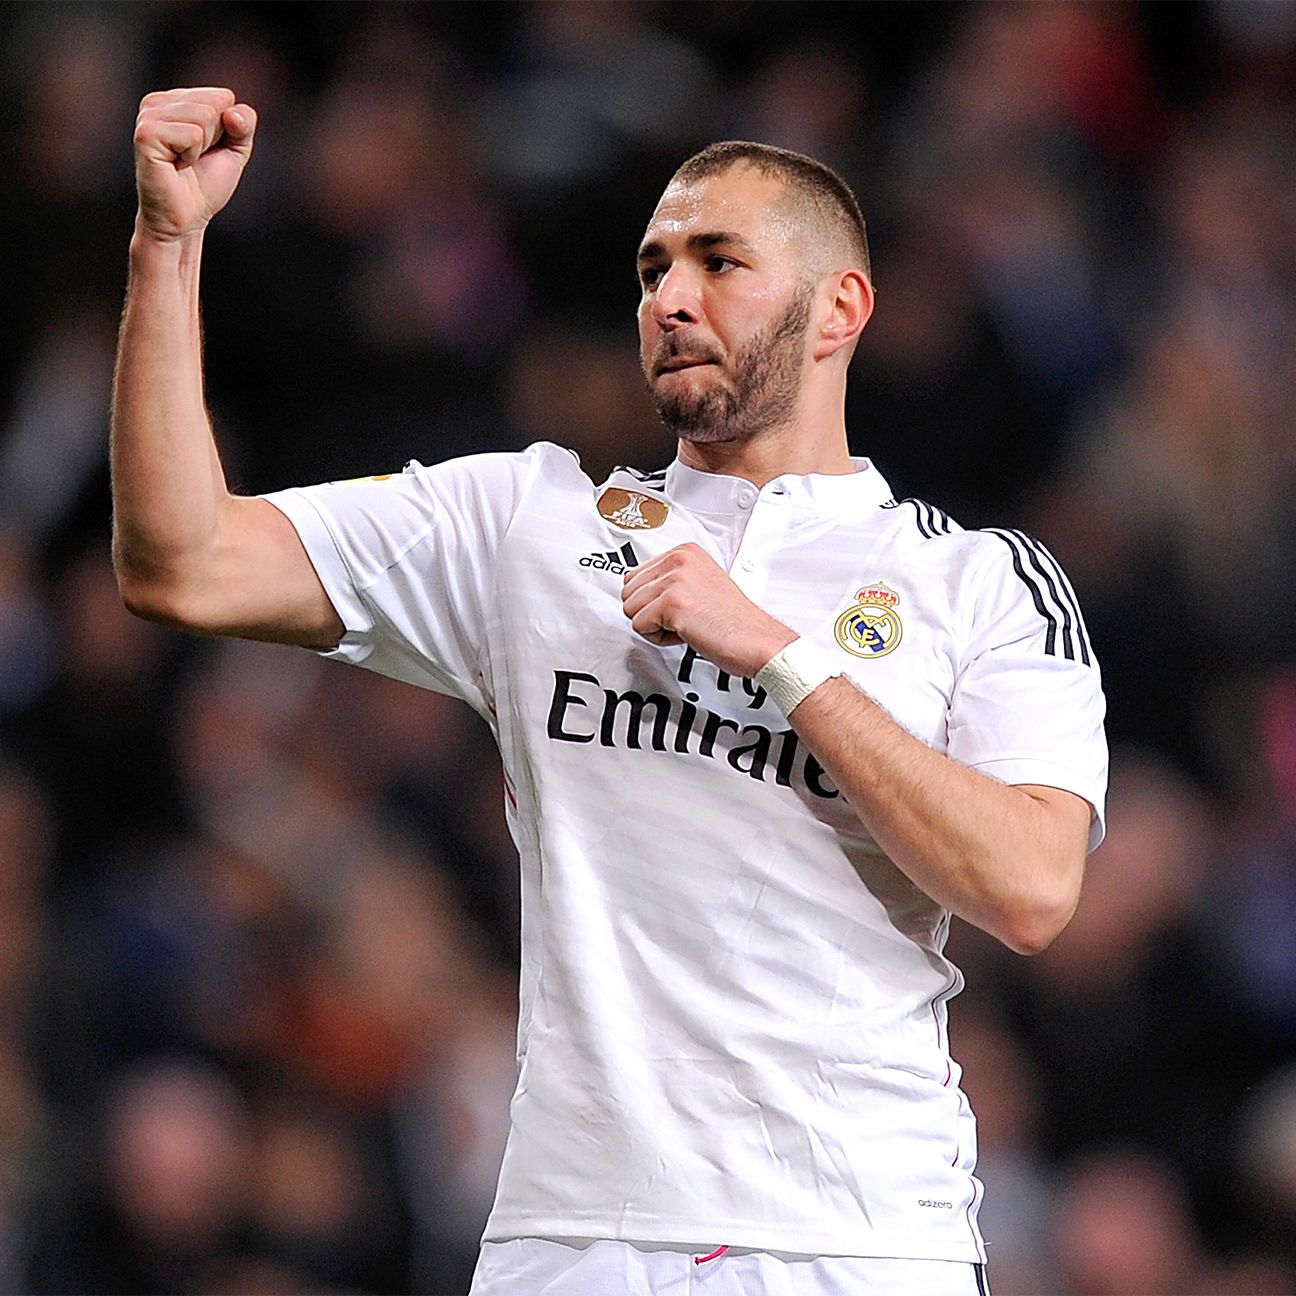 Karim Benzema scored 15 goals in La Liga in 2014-15 for Real Madrid, who mostly played with a 4-3-3 under Carlo Ancelotti.